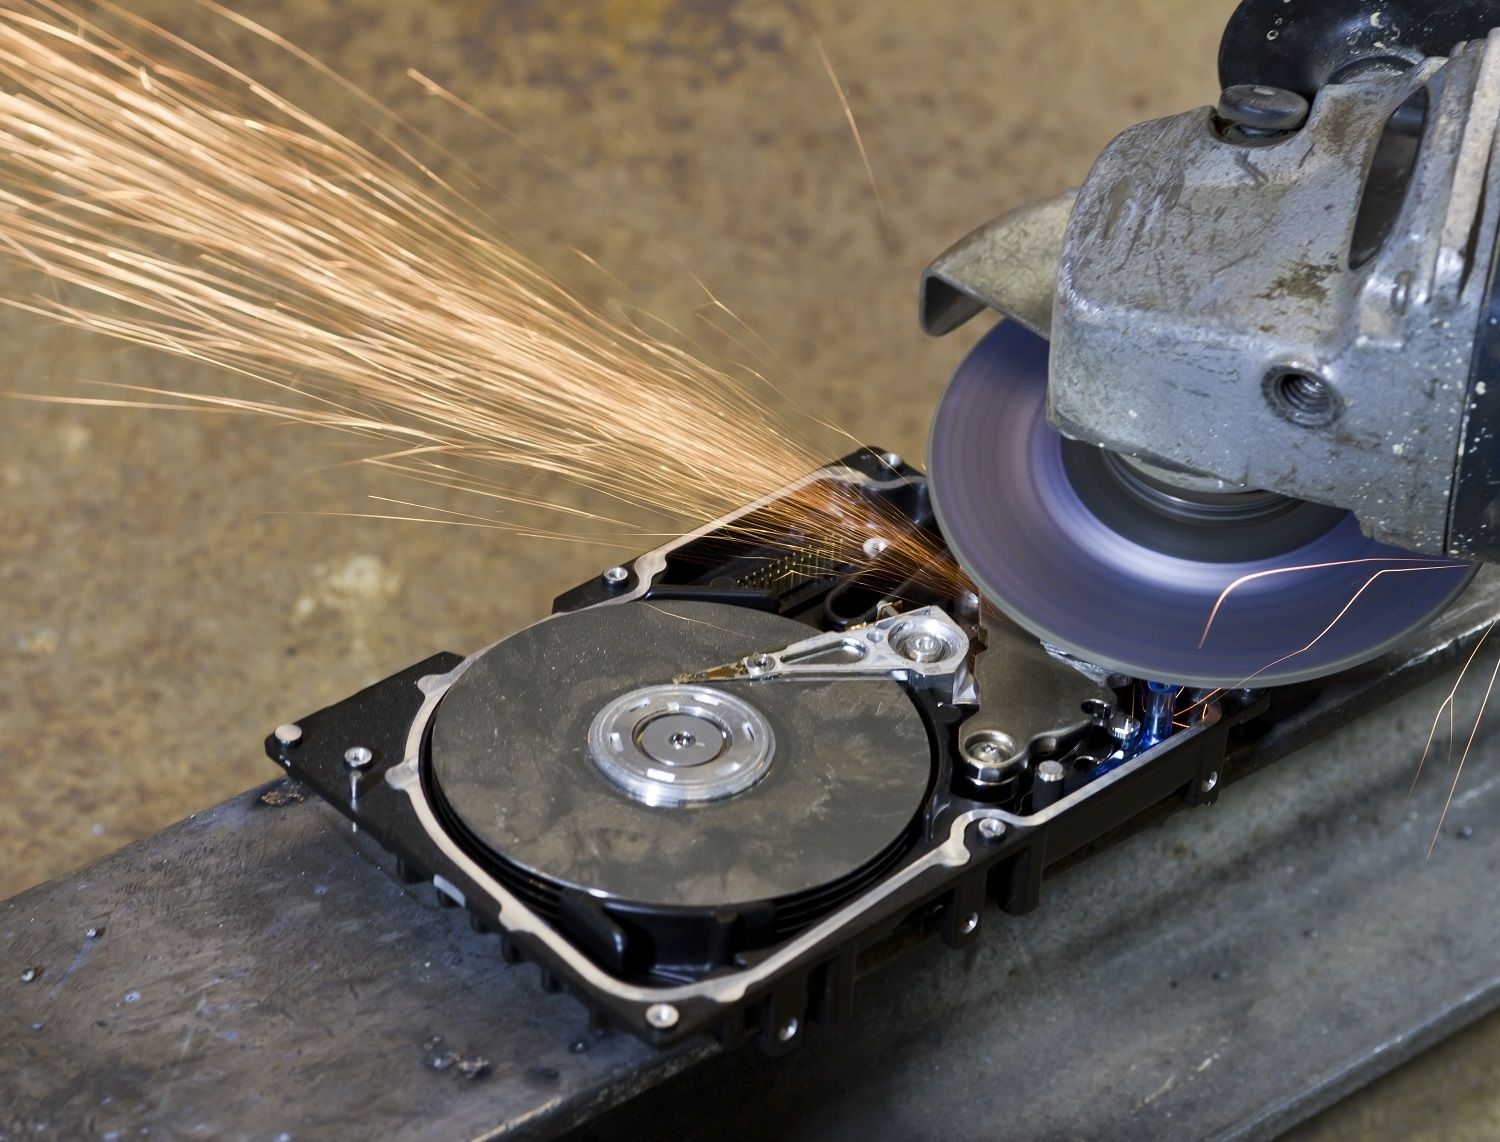 A hard disk drive is being destroyed by an electronic saw or grinder